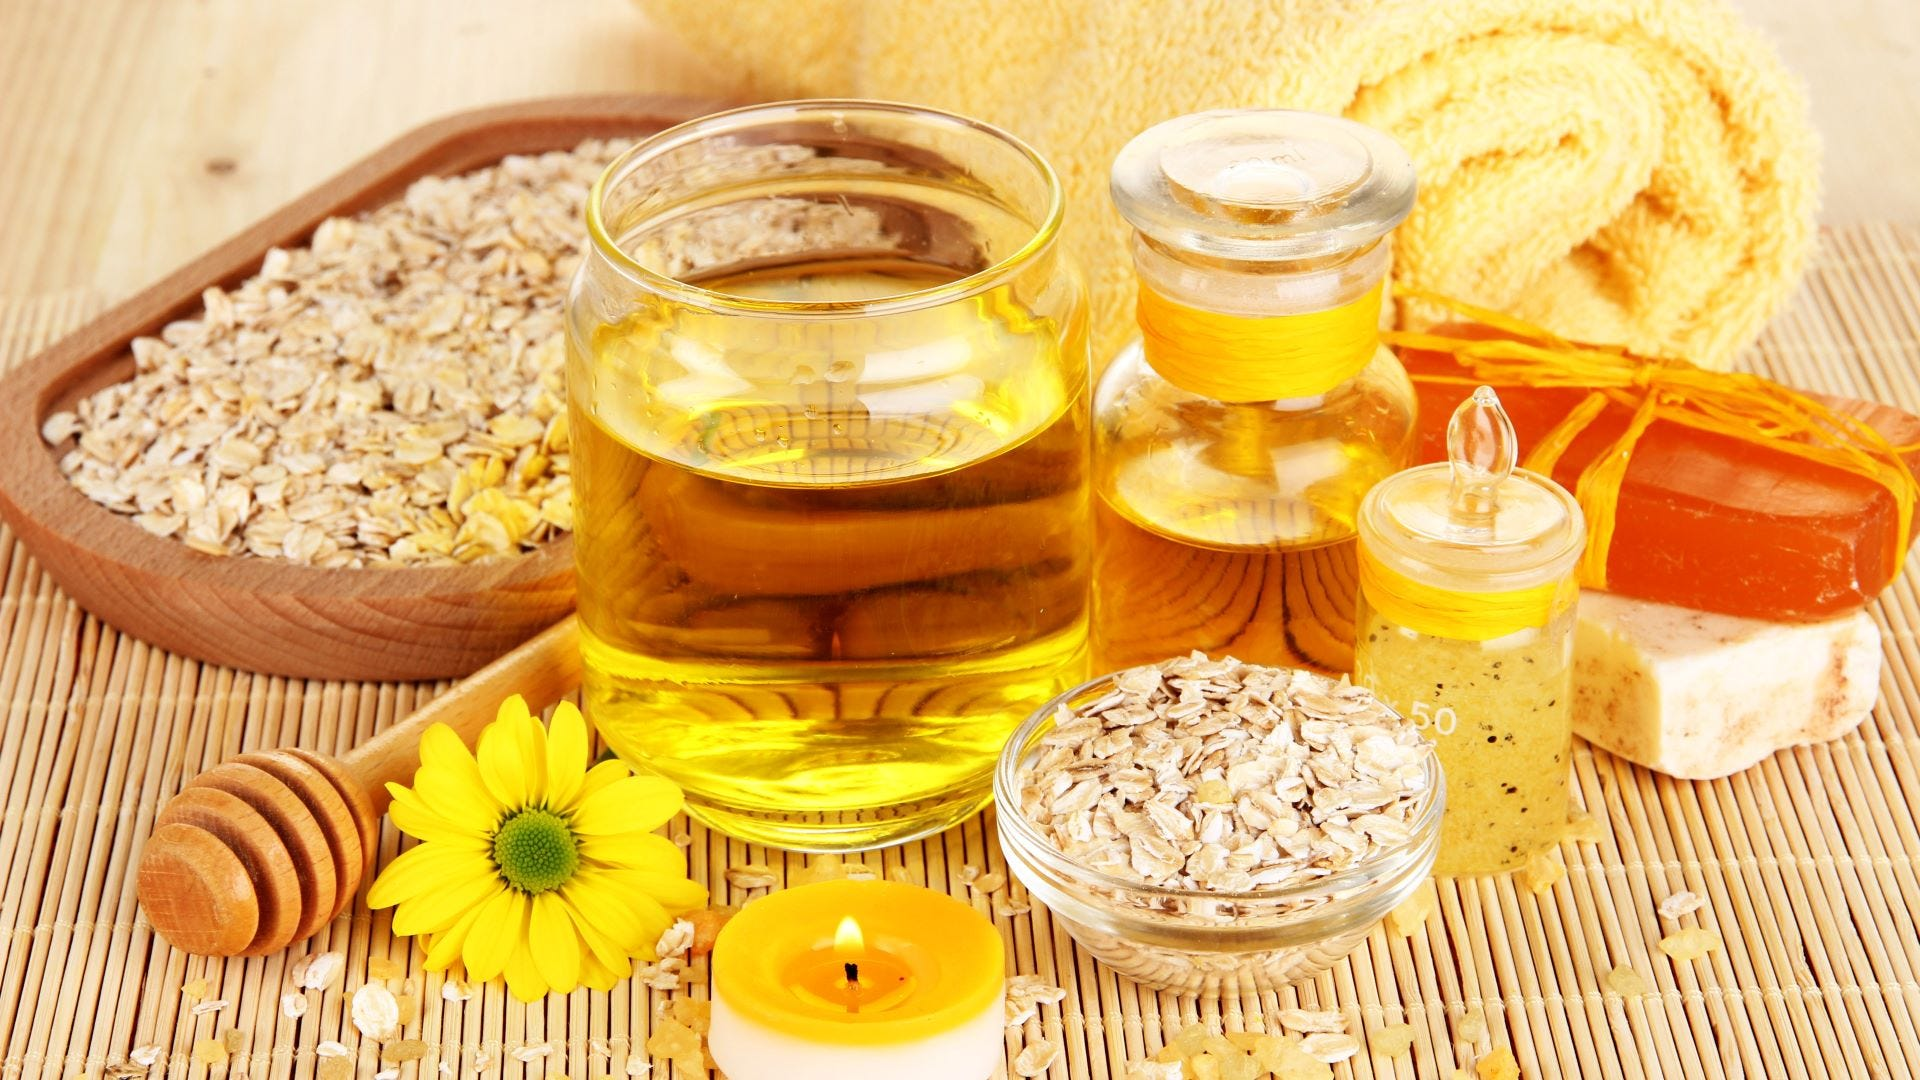 A bowl and wooden plate full of oatmeal surrounded by glass containers filled with honey.